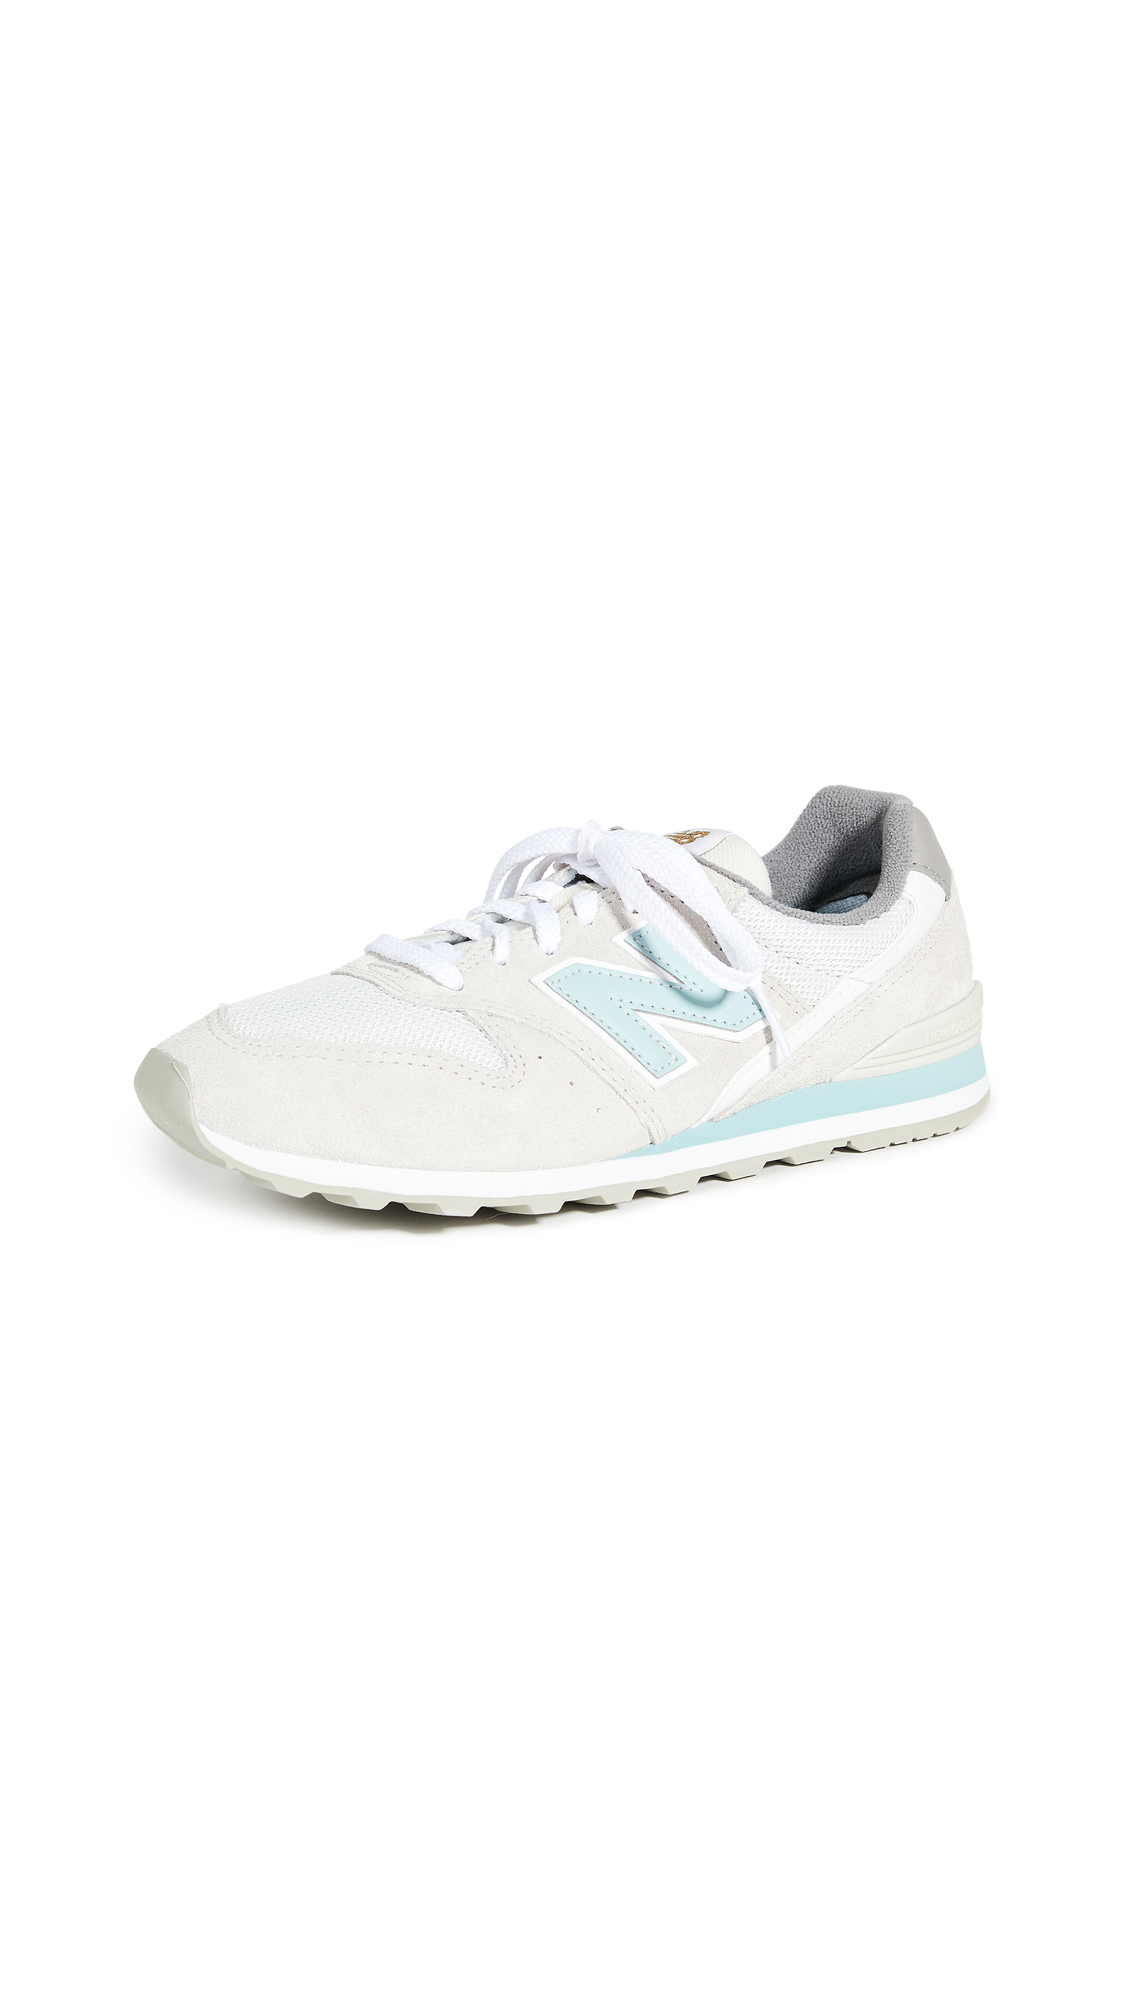 New Balance 996 V2 SNEAKERS